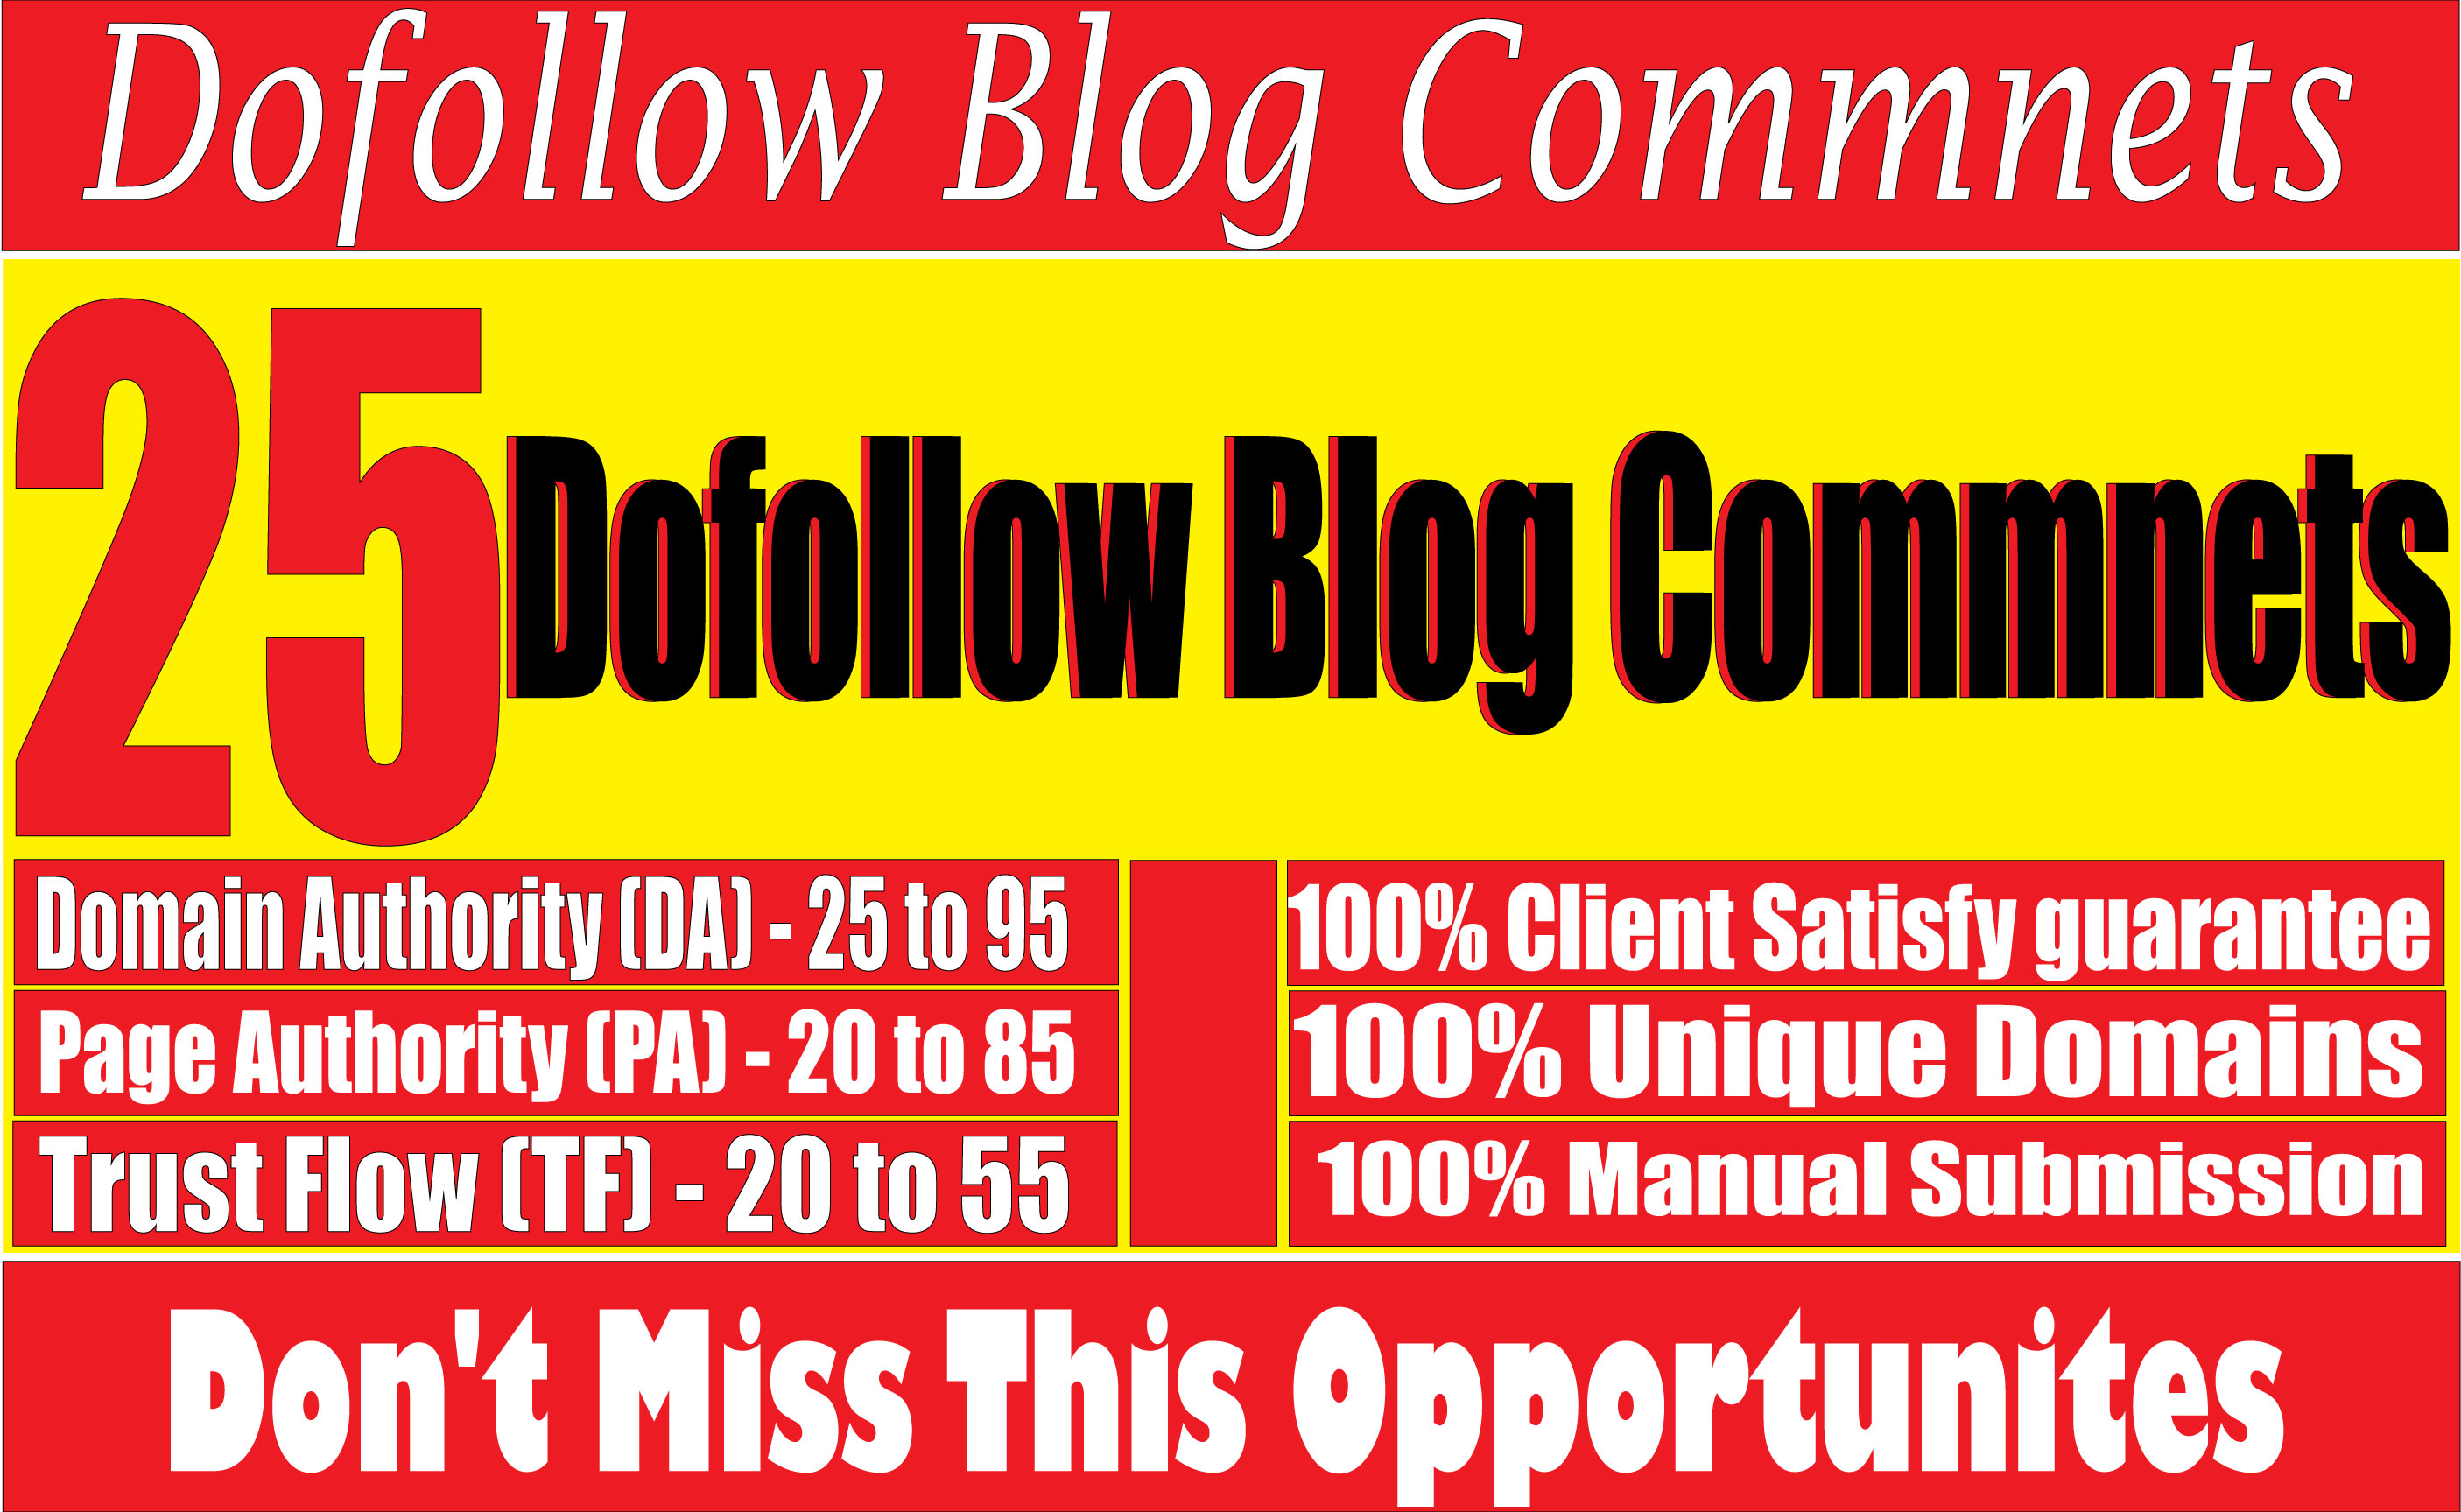 I will create 25 High Quality Dofollow Blog Comments